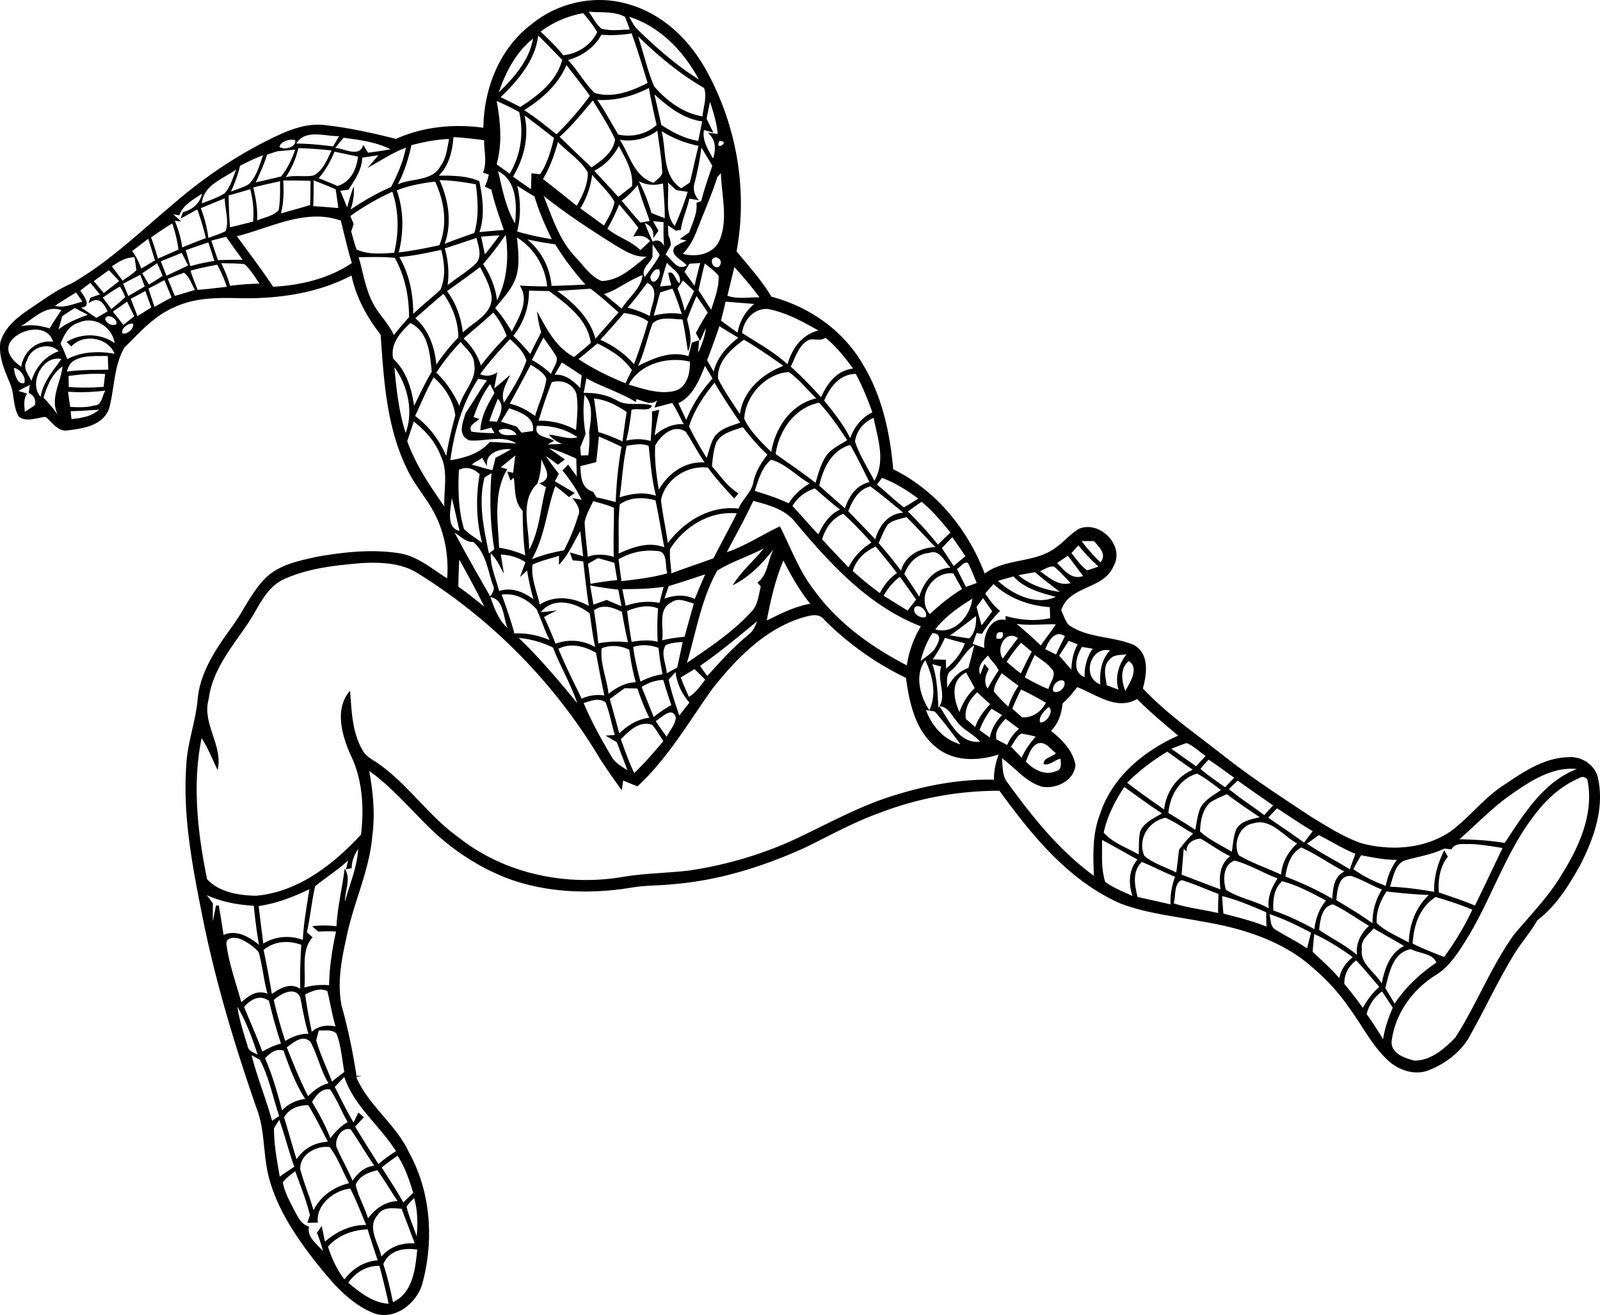 spiderman coloring pages printable spiderman to print spiderman kids coloring pages coloring printable pages spiderman